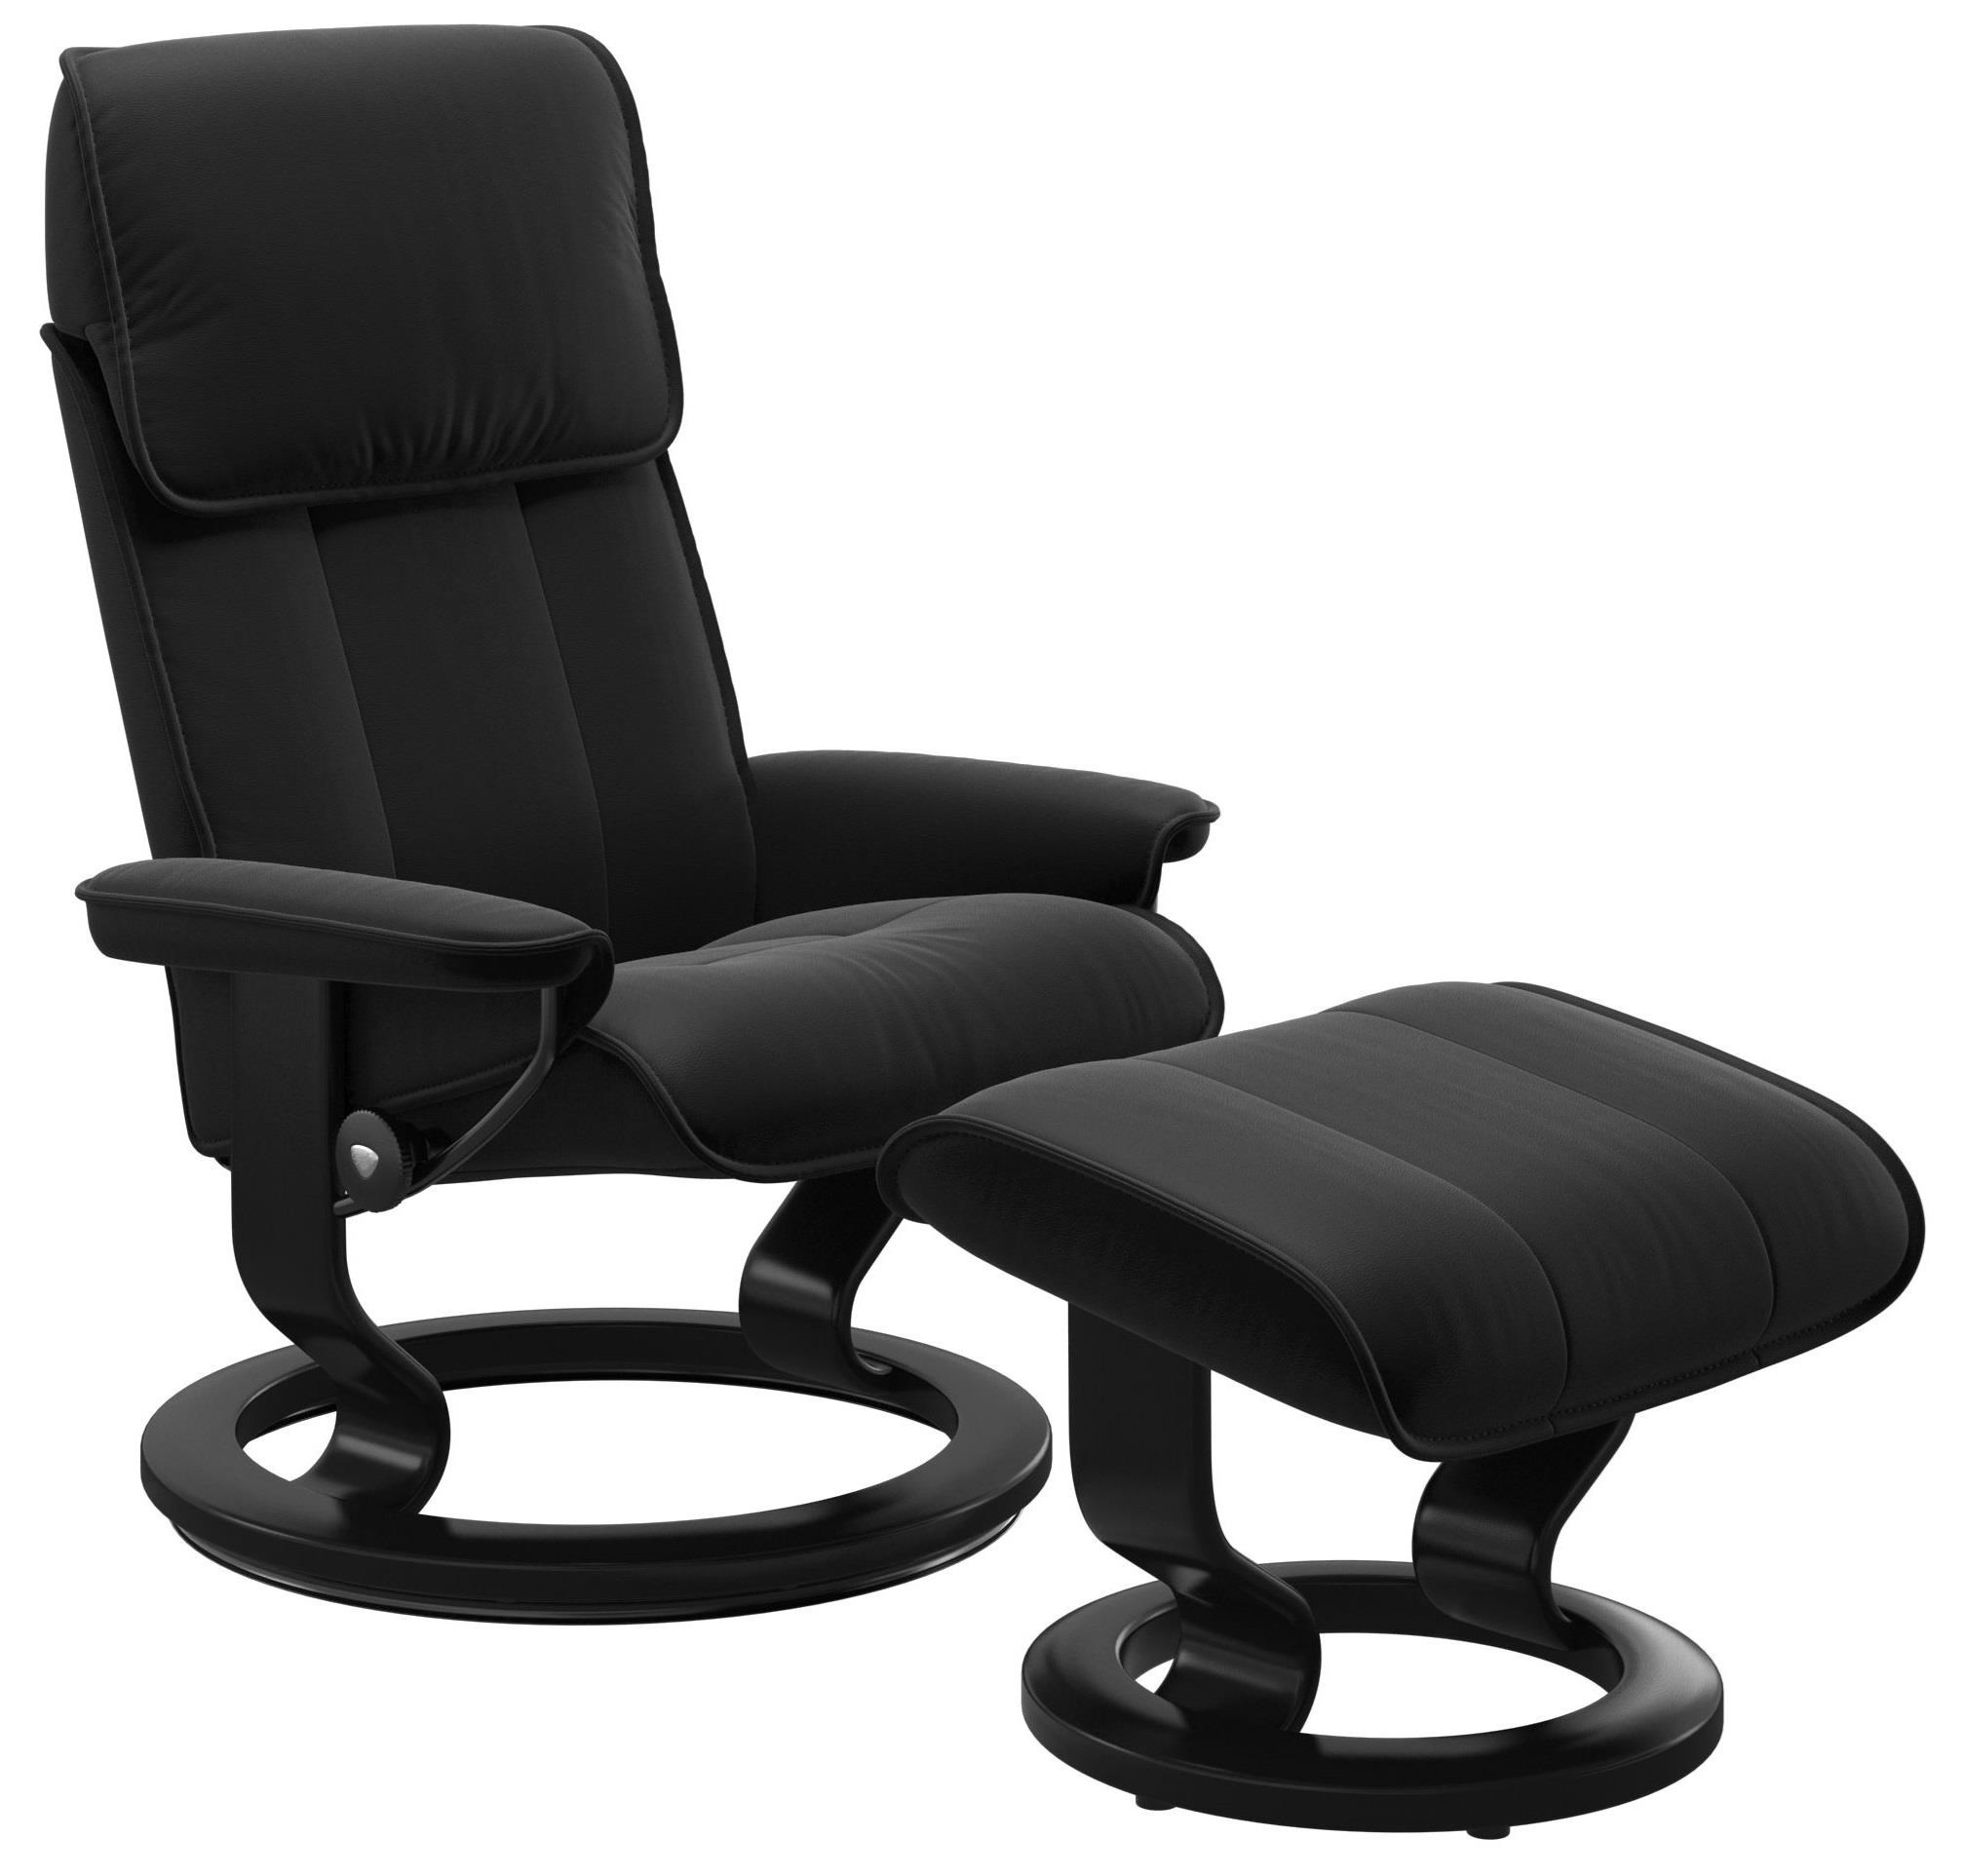 Admiral Large Reclining Chair and Ottoman by Stressless at Bennett's Furniture and Mattresses